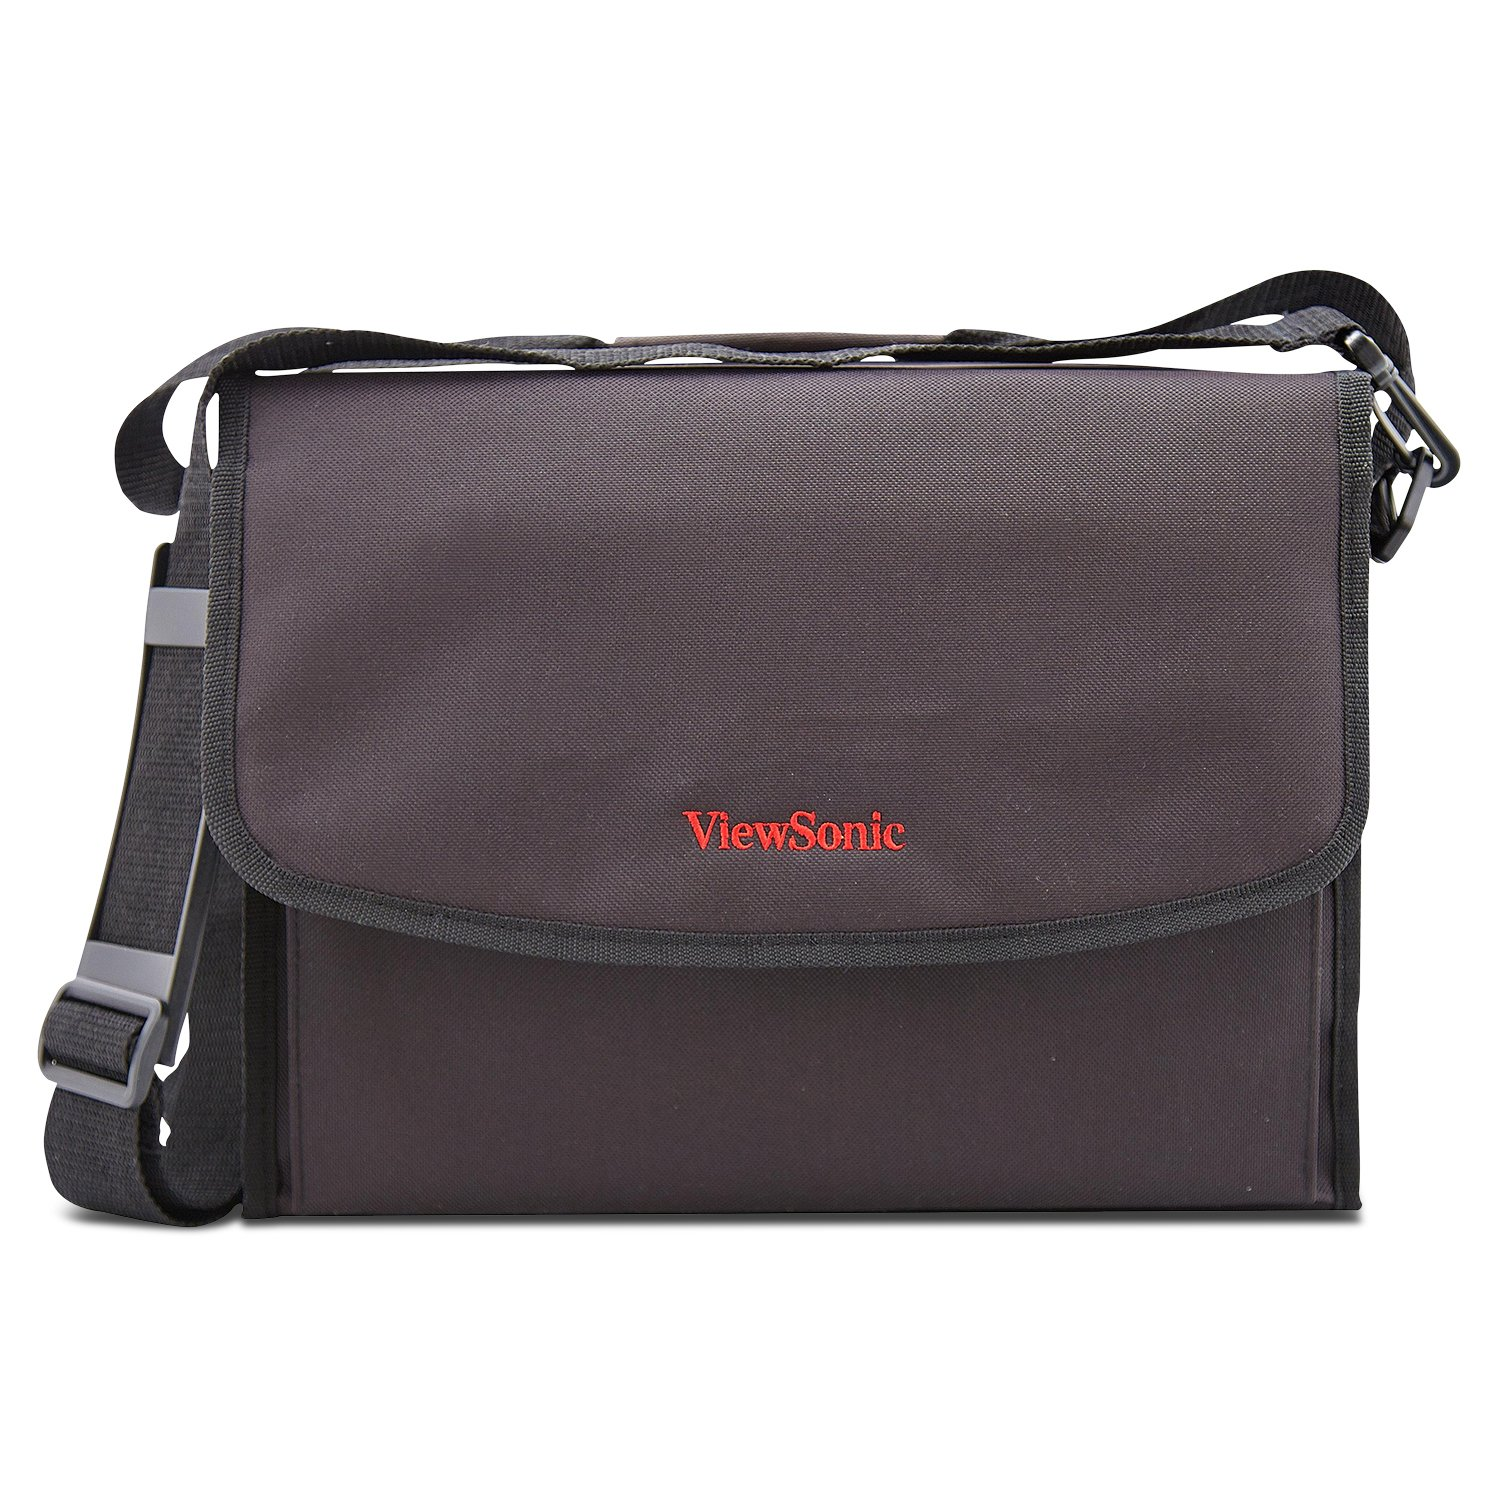 ViewSonic PJ-CASE-008 Projector Carrying Case for LightStream Projectors by ViewSonic (Image #1)